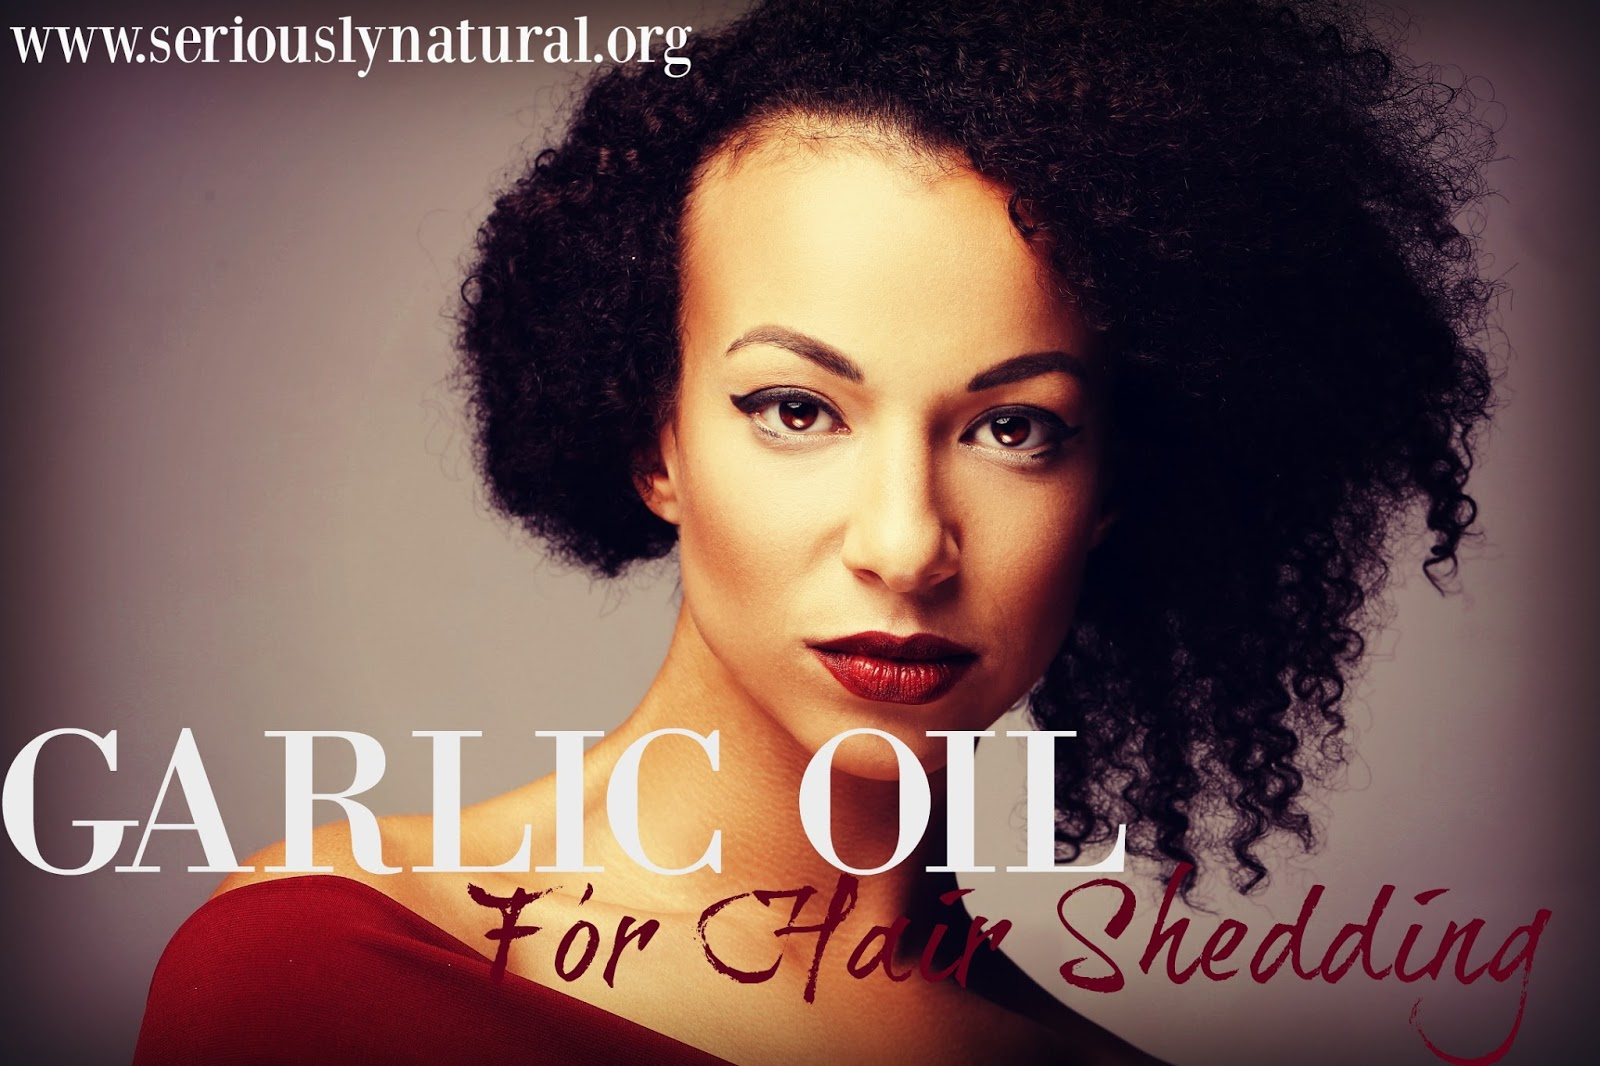 Garlic oil will nourish hair by stimulating the blood flow to your scalp. This encourages hair to grow rather that falling out or breaking off.